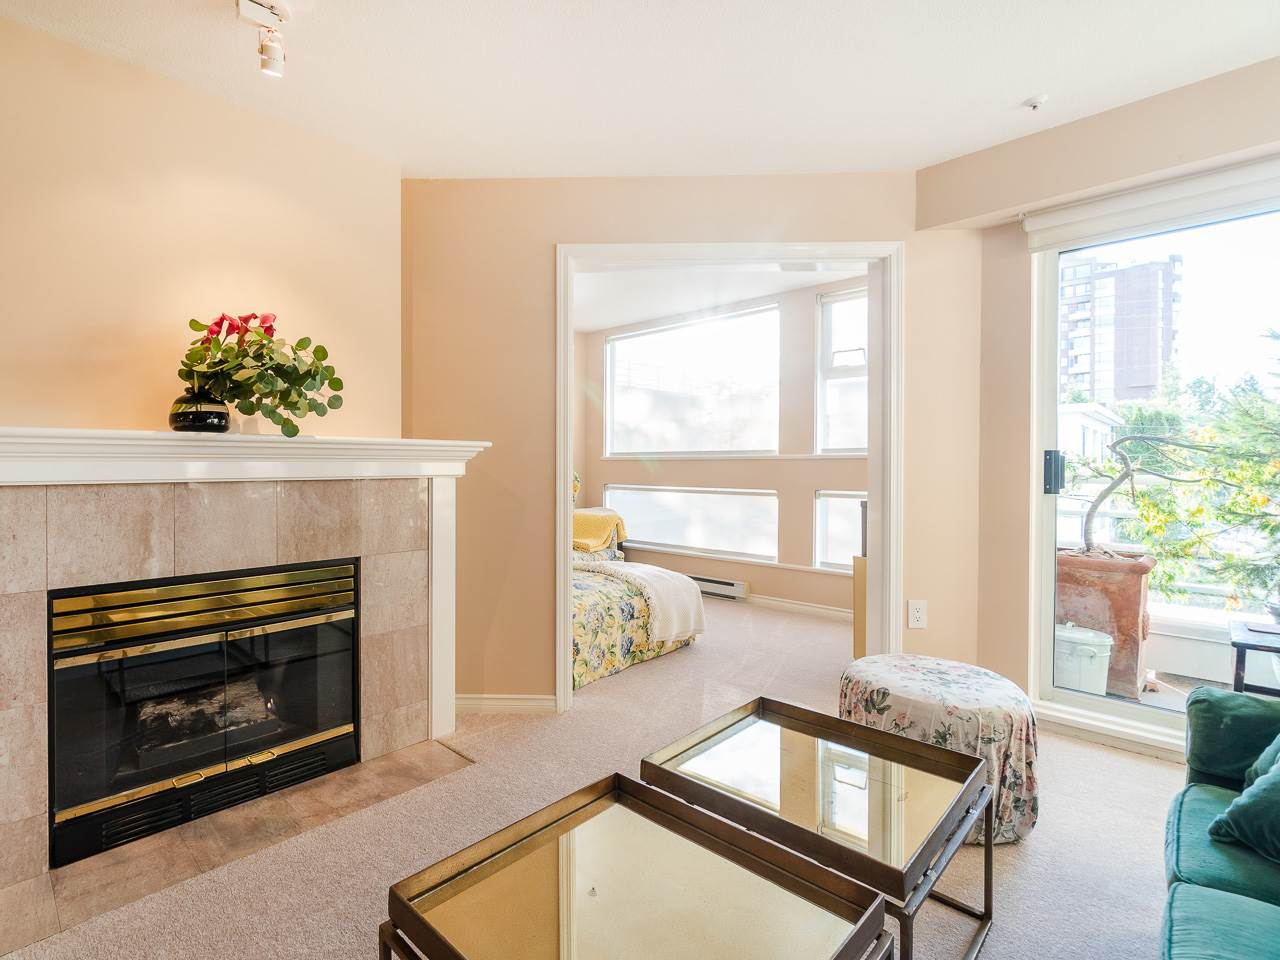 306 2105 W 42ND AVENUE - Kerrisdale Apartment/Condo for sale, 1 Bedroom (R2511504) - #7